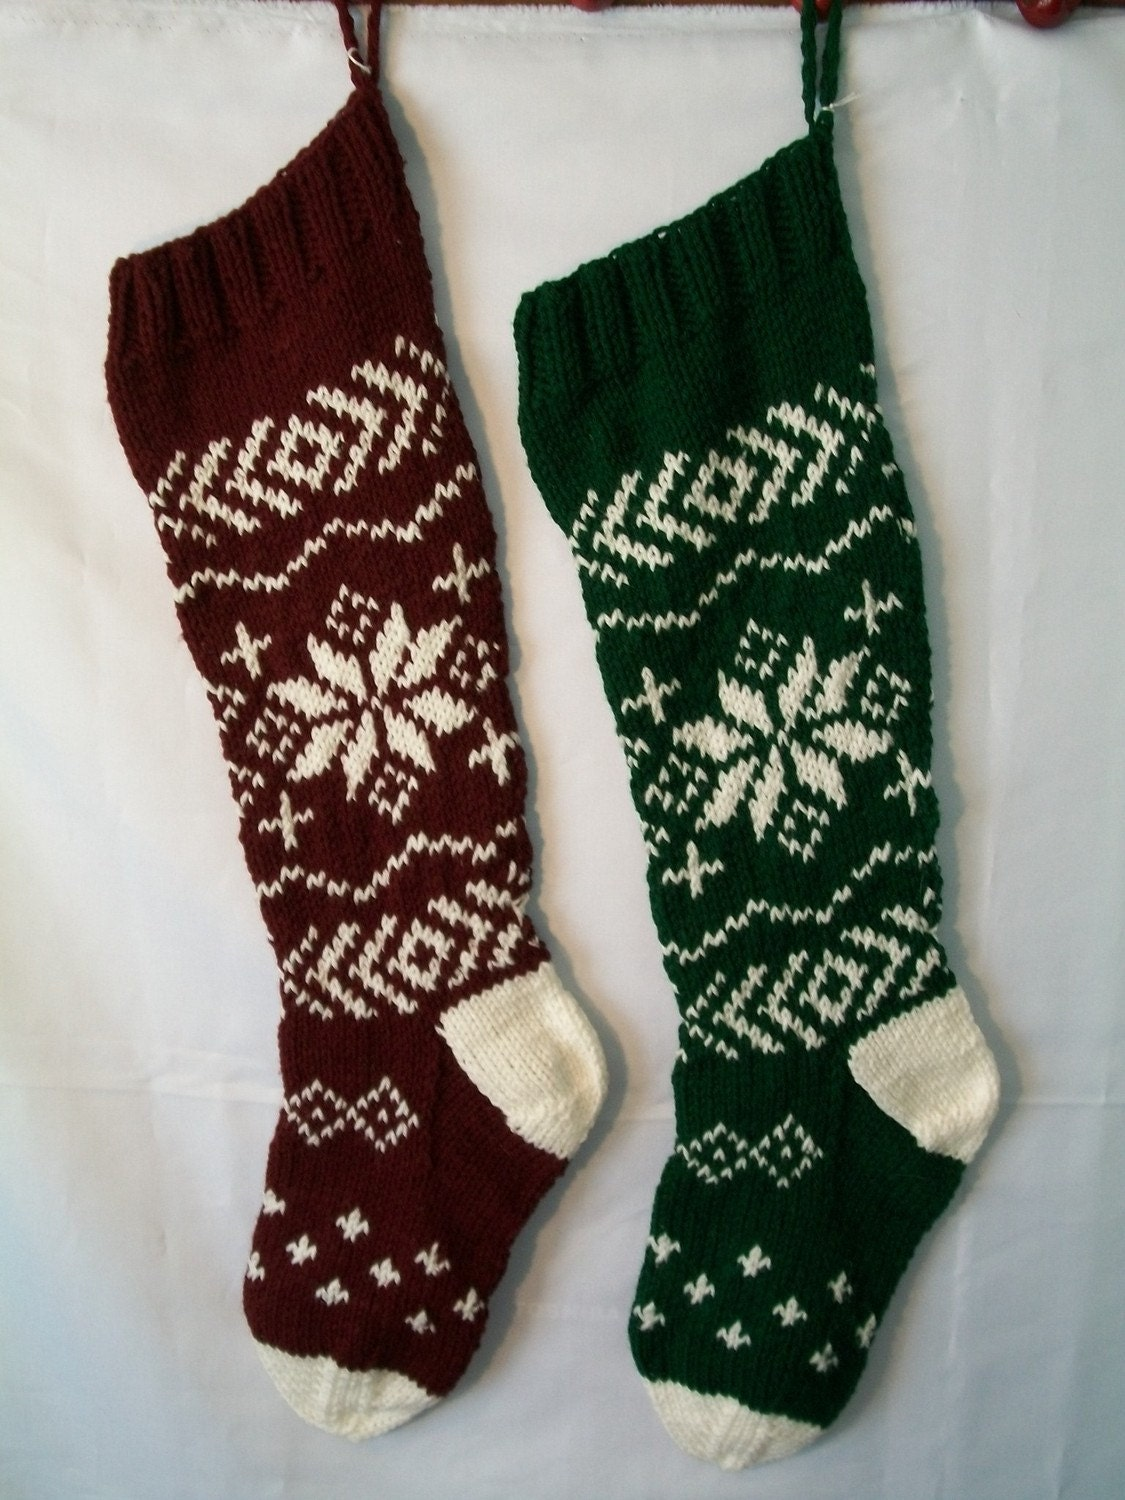 Hand Knitted Christmas Stockings Snowflake Design for Shawna